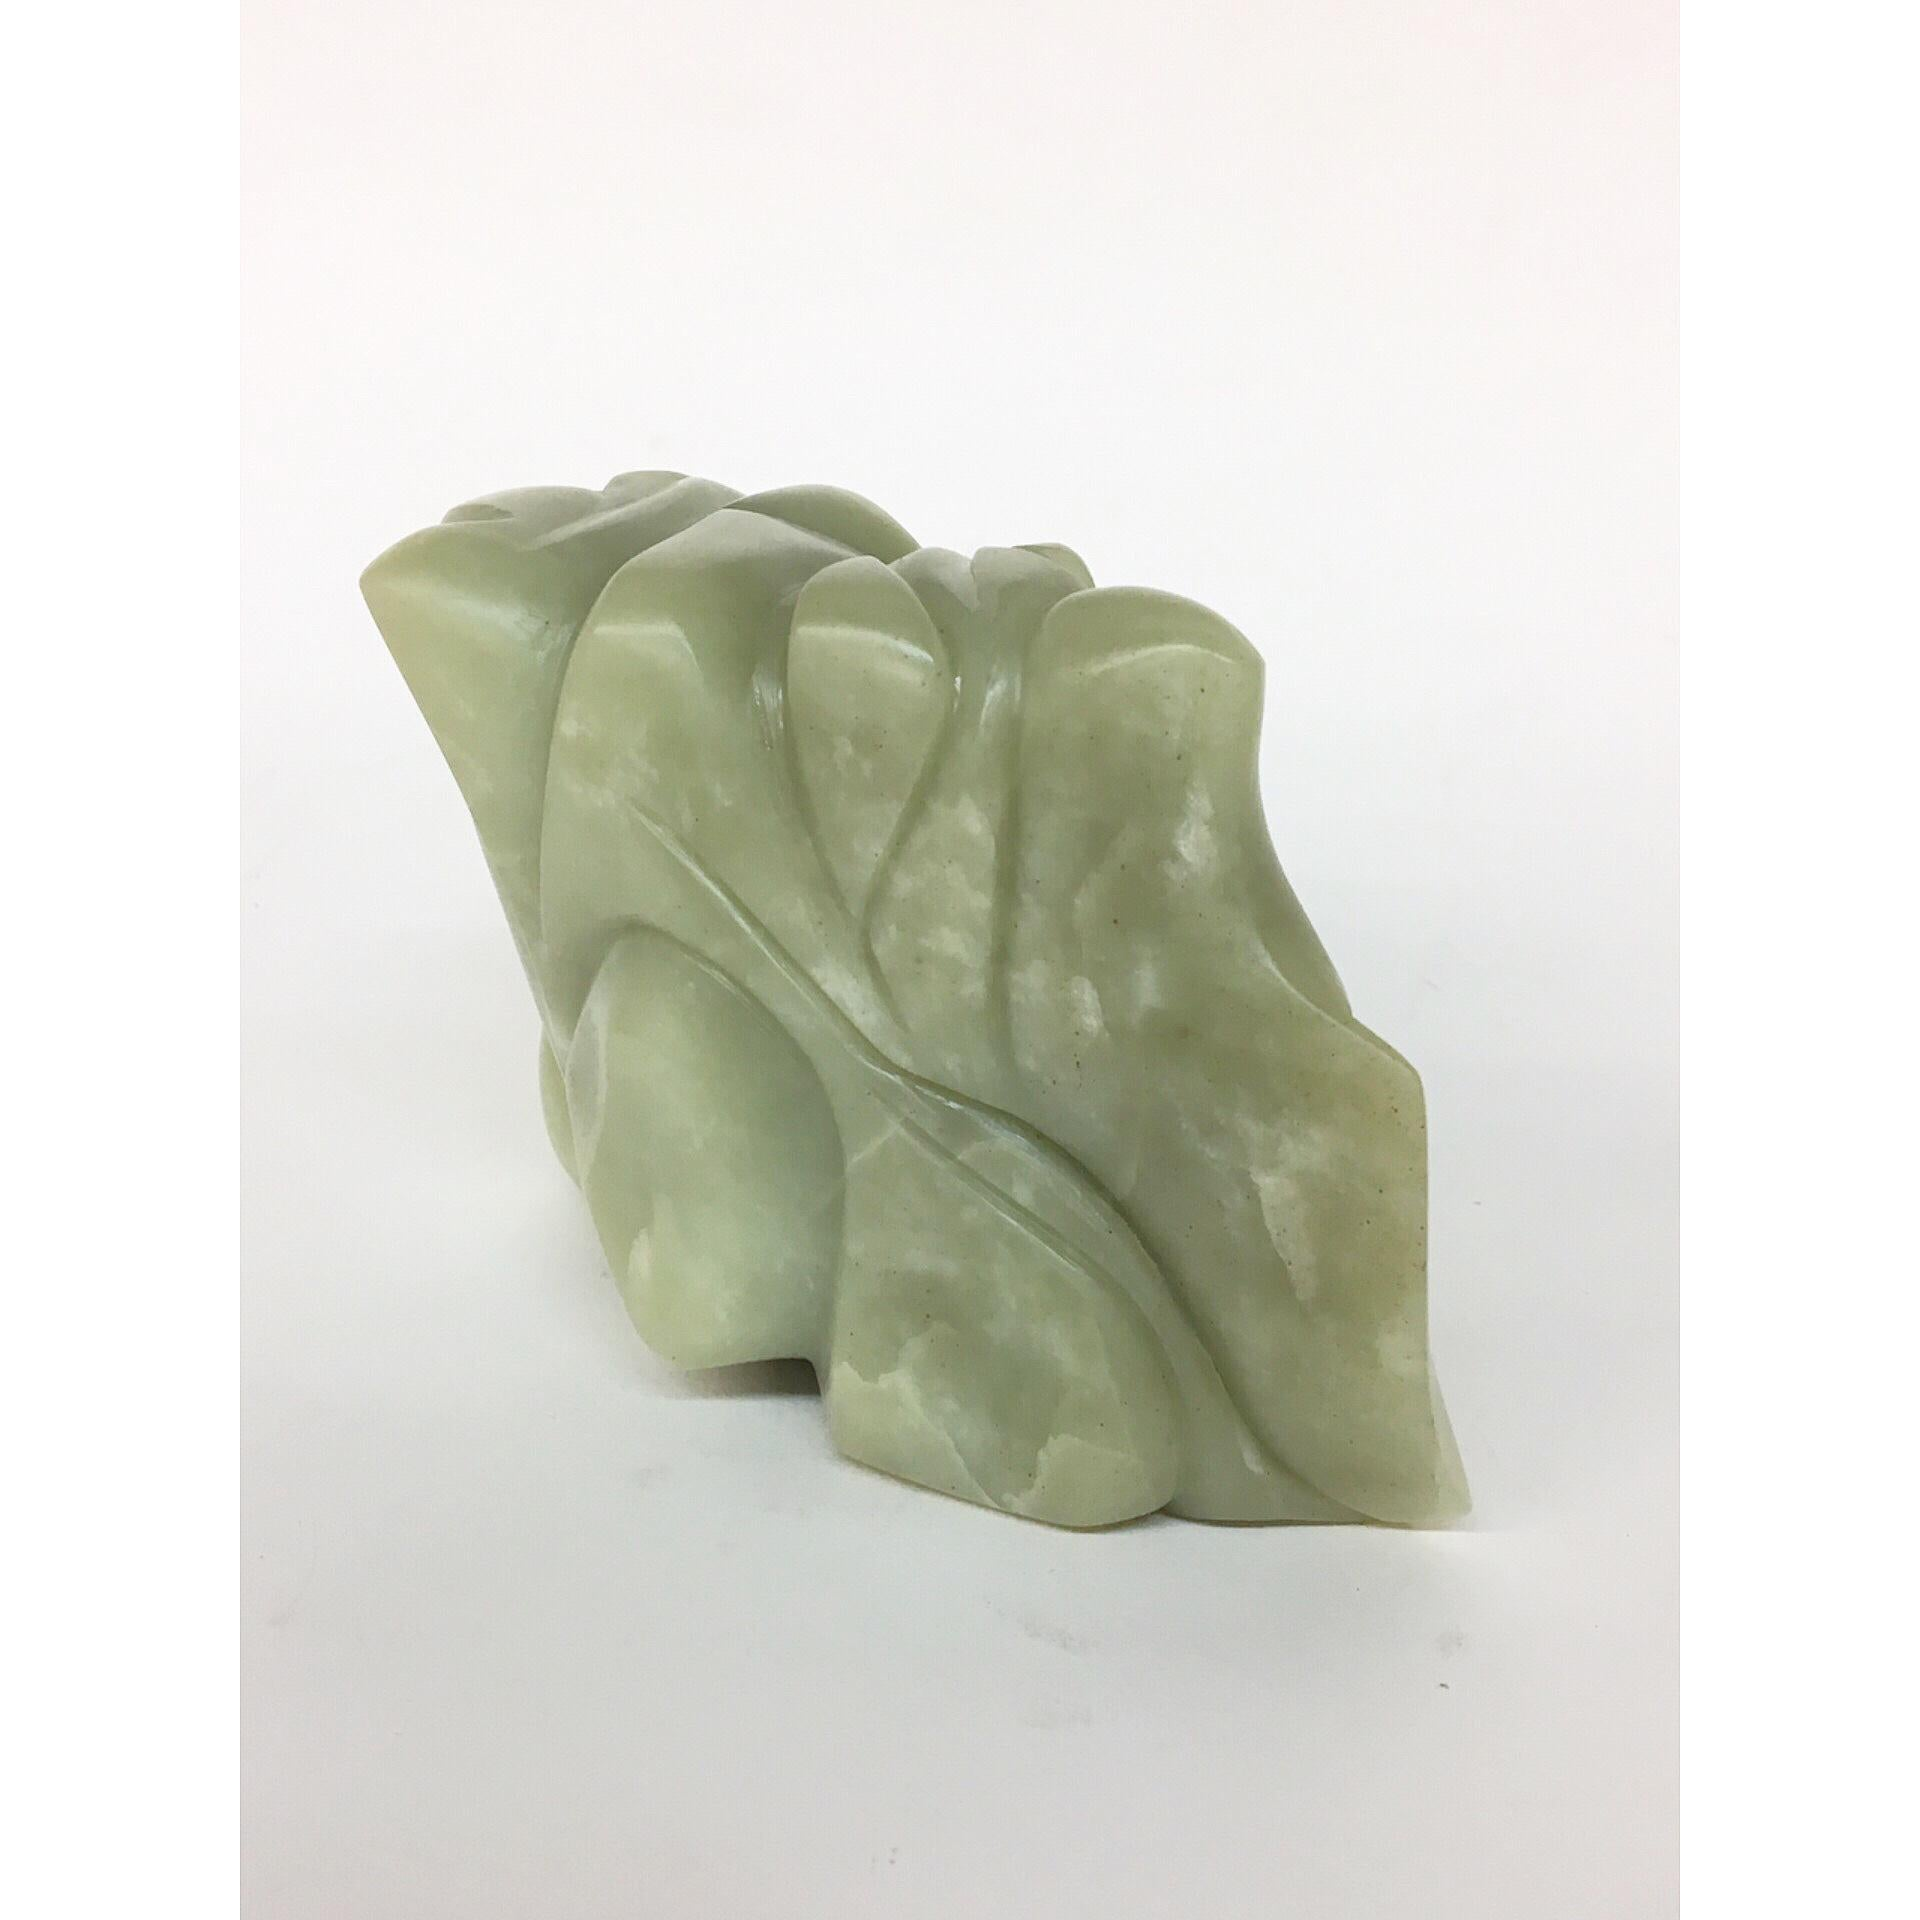 TANGLE Soapstone Sculpture 6 1/2 × 4 × 3 inch by Melanie Newcombe